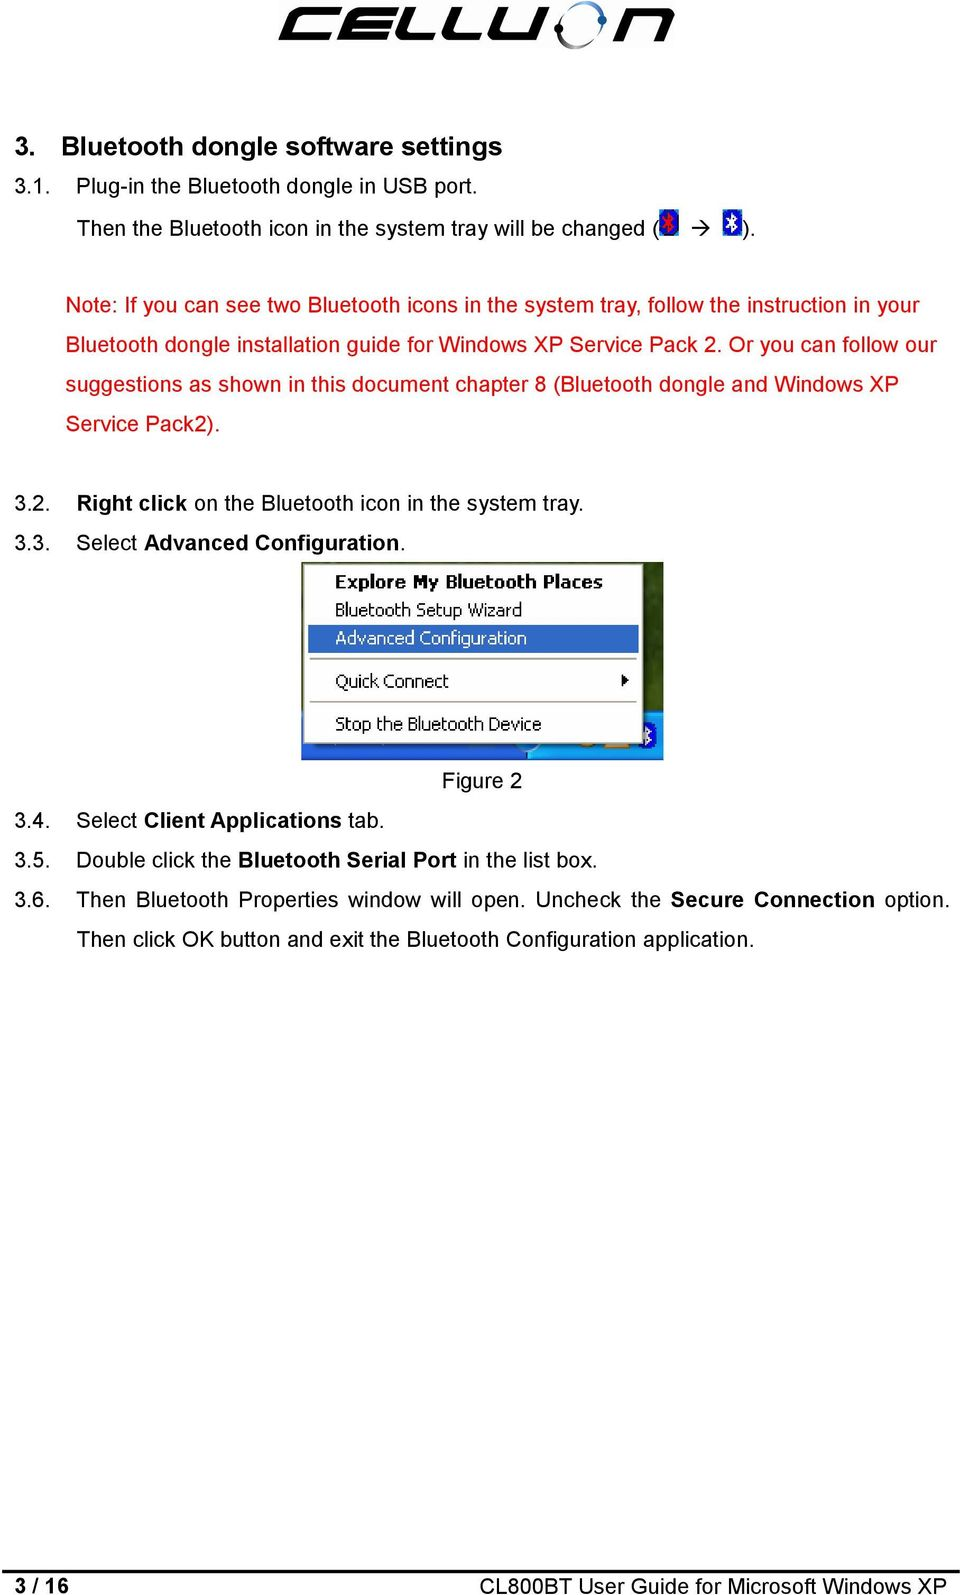 Or you can follow our suggestions as shown in this document chapter 8 (Bluetooth dongle and Windows XP Service Pack2). 3.2. Right click on the Bluetooth icon in the system tray. 3.3. Select Advanced Configuration.